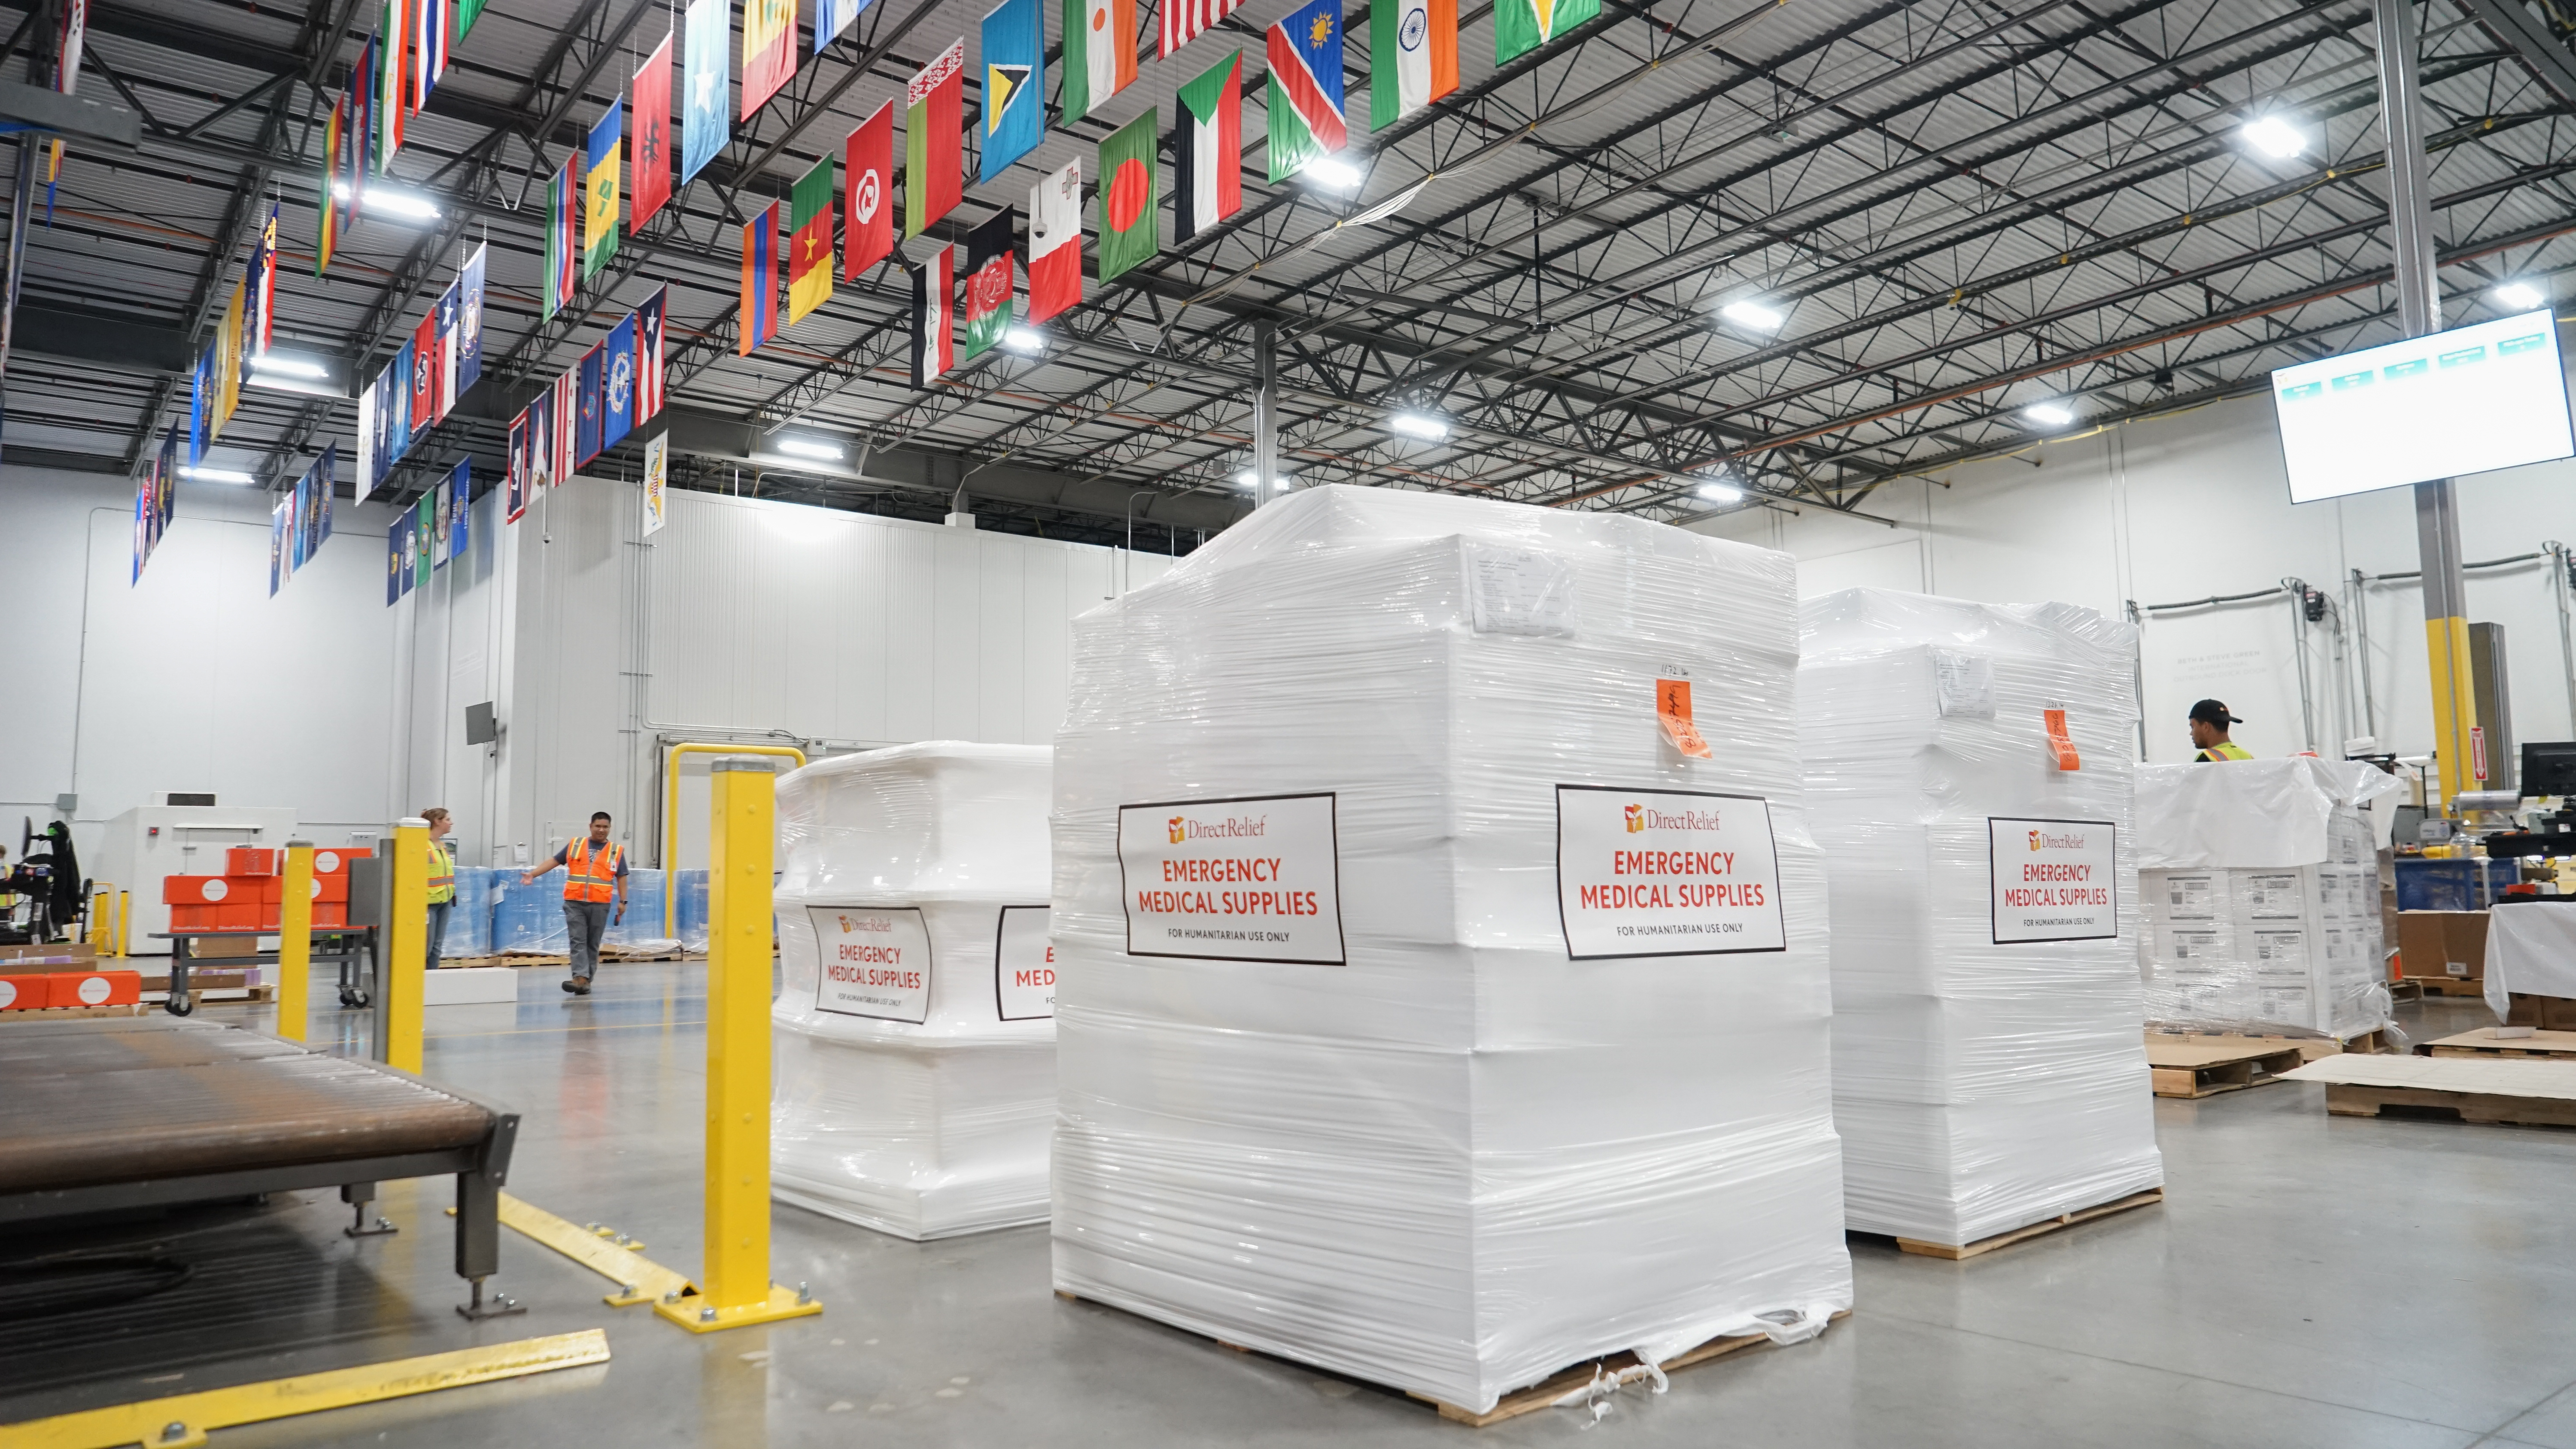 Medical supplies bound for the Zambezia Province of Mozambique are staged at Direct Relief's warehouse in Santa Barbara, California, on Friday, March 22, 2019. The organization is shipping essential medical supplies, like antibiotics, wound care, and water purification tablets, to health partners in the region. (Lara Cooper/Direct Relief)